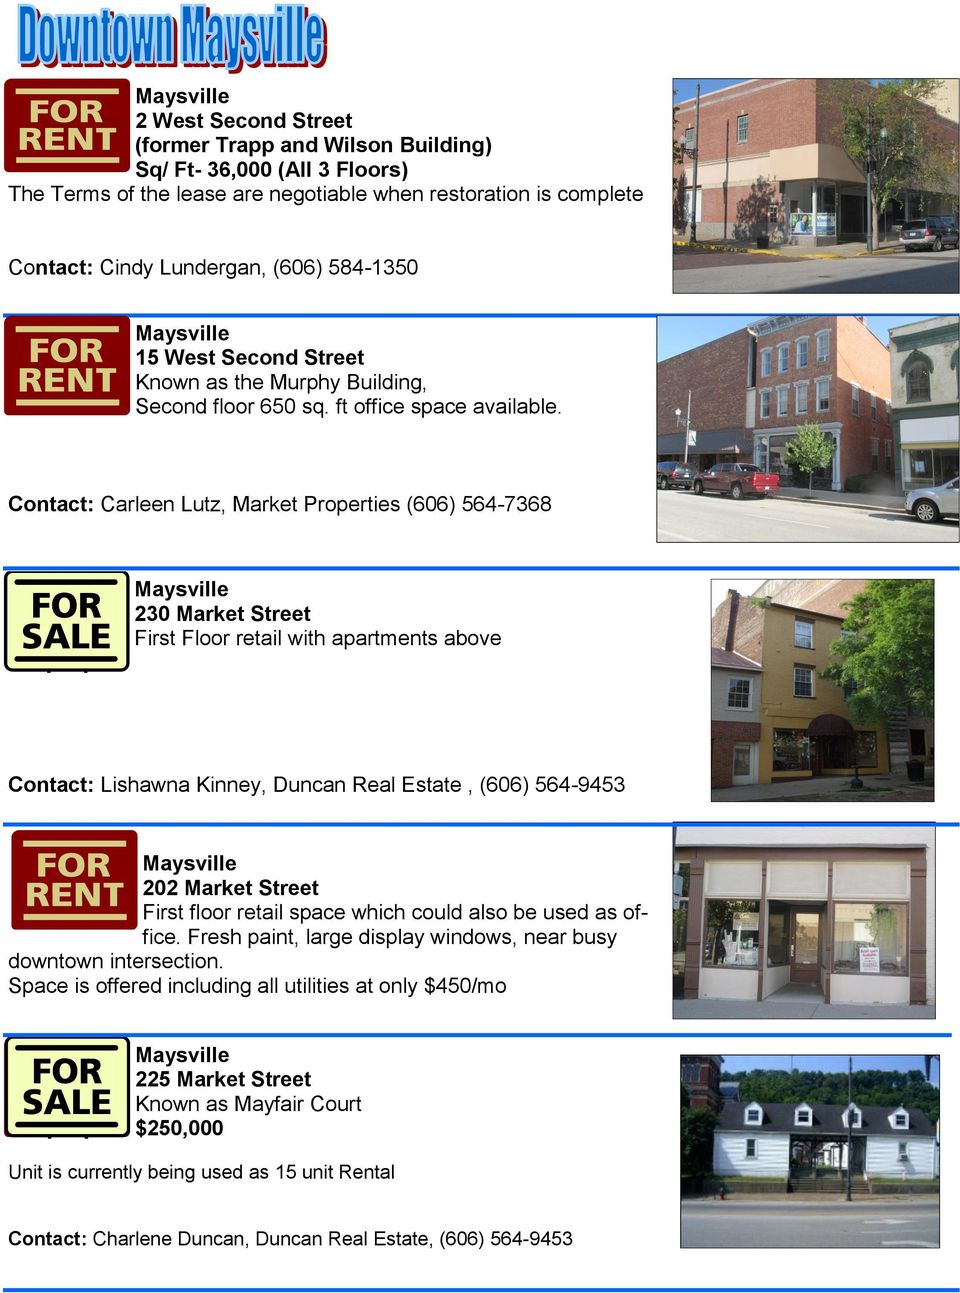 Contact: Carleen Lutz, Market Properties (606) 564-7368 230 Market Street First Floor retail with apartments above Contact: Lishawna Kinney, Duncan Real Estate, (606) 564-9453 202 Market Street First